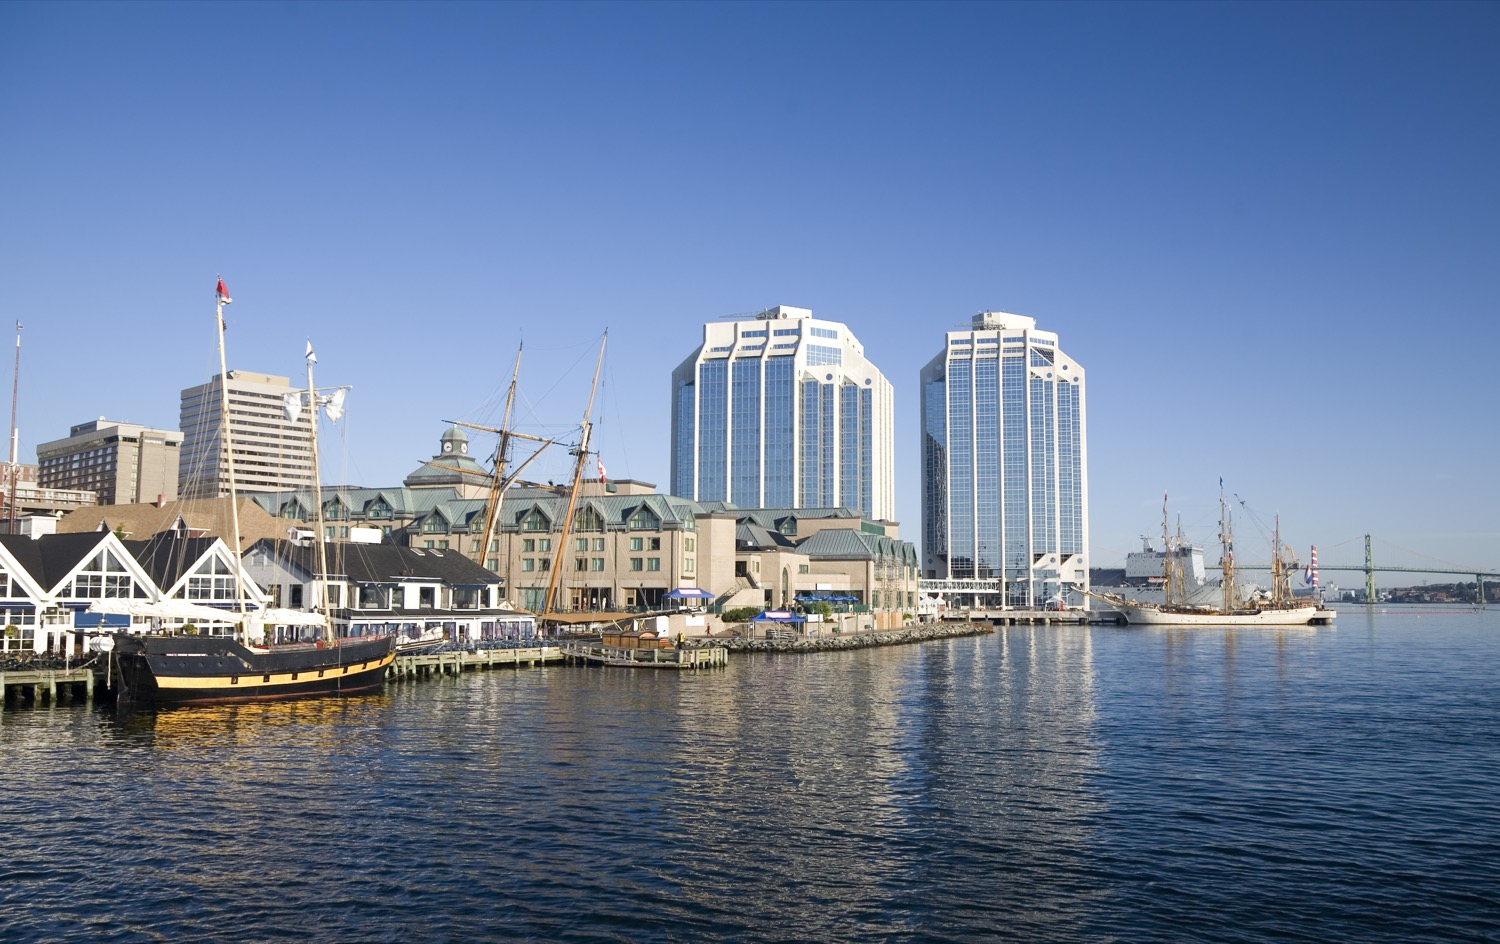 Ship and condos on the waterfront of Halifax.